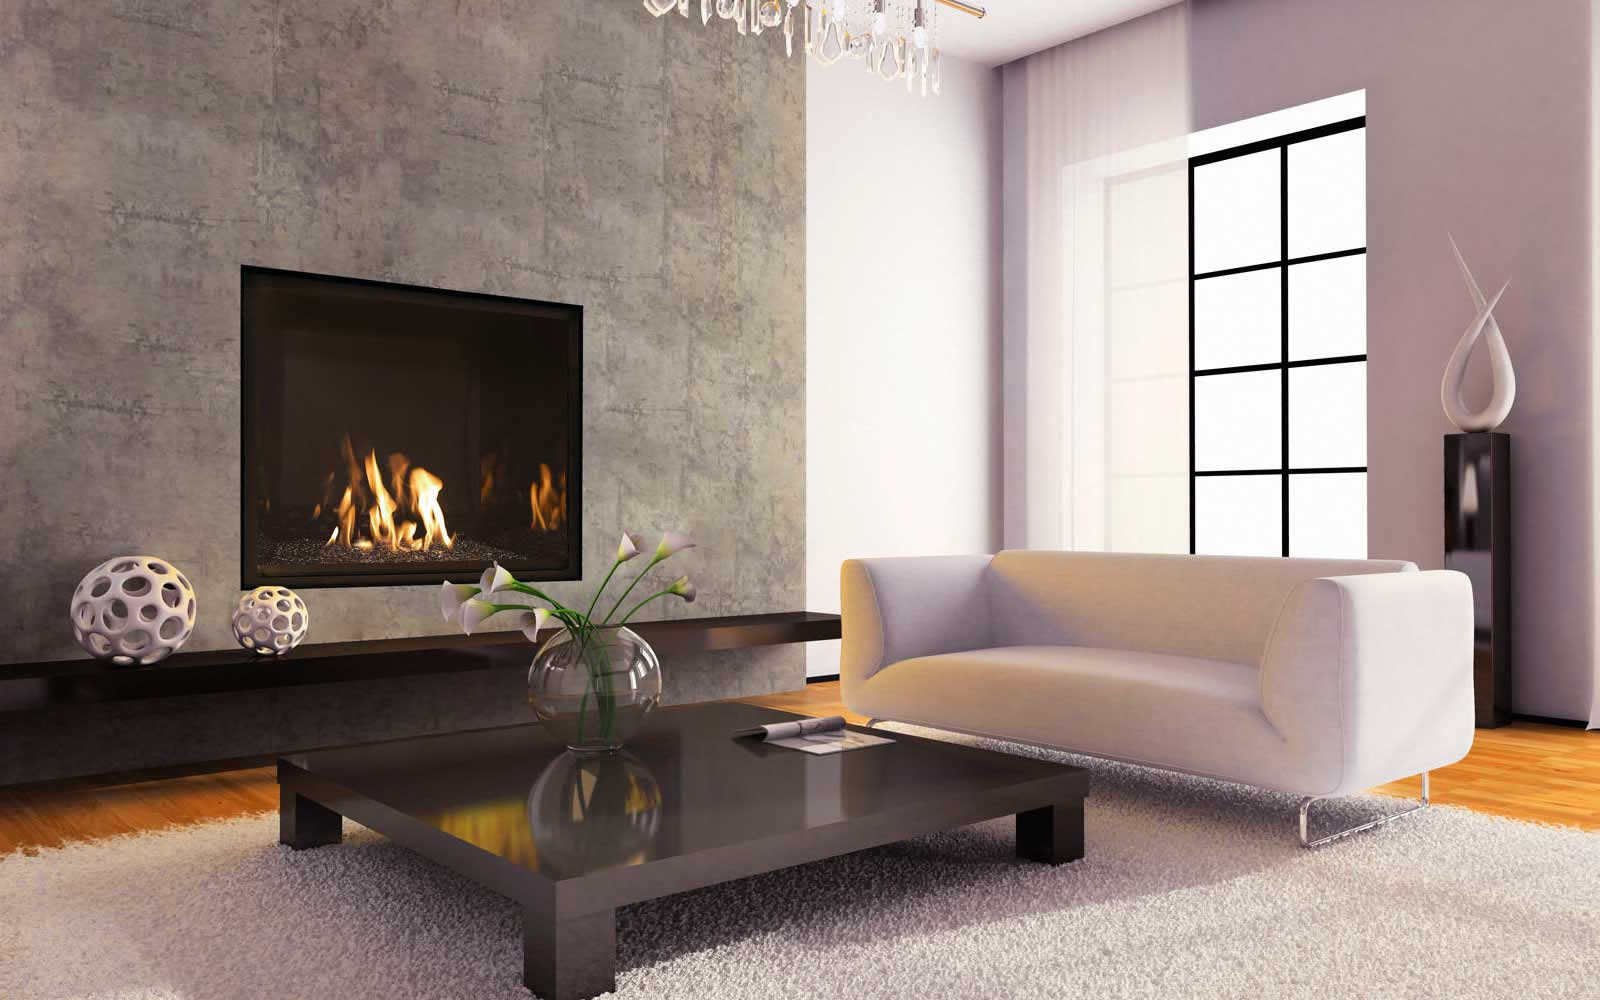 Service Fireplaces in Chicago